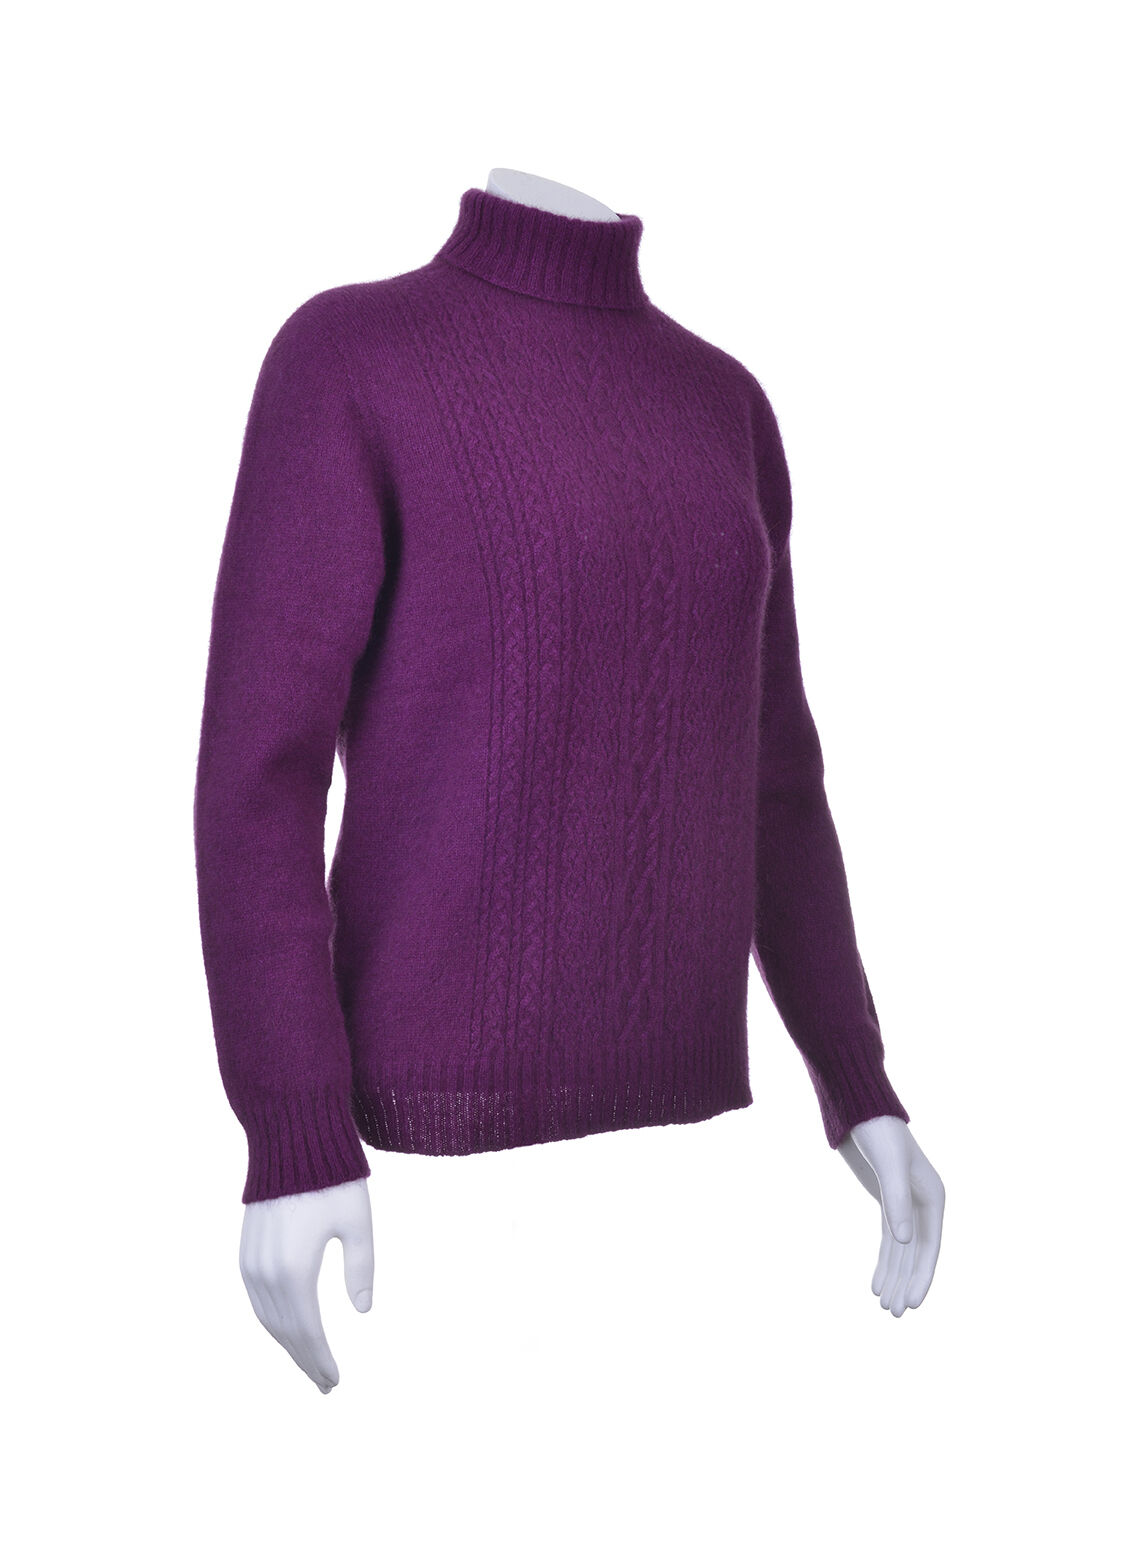 New Fur Detail Lace with Jersey Neck Polo Knitwear Wool